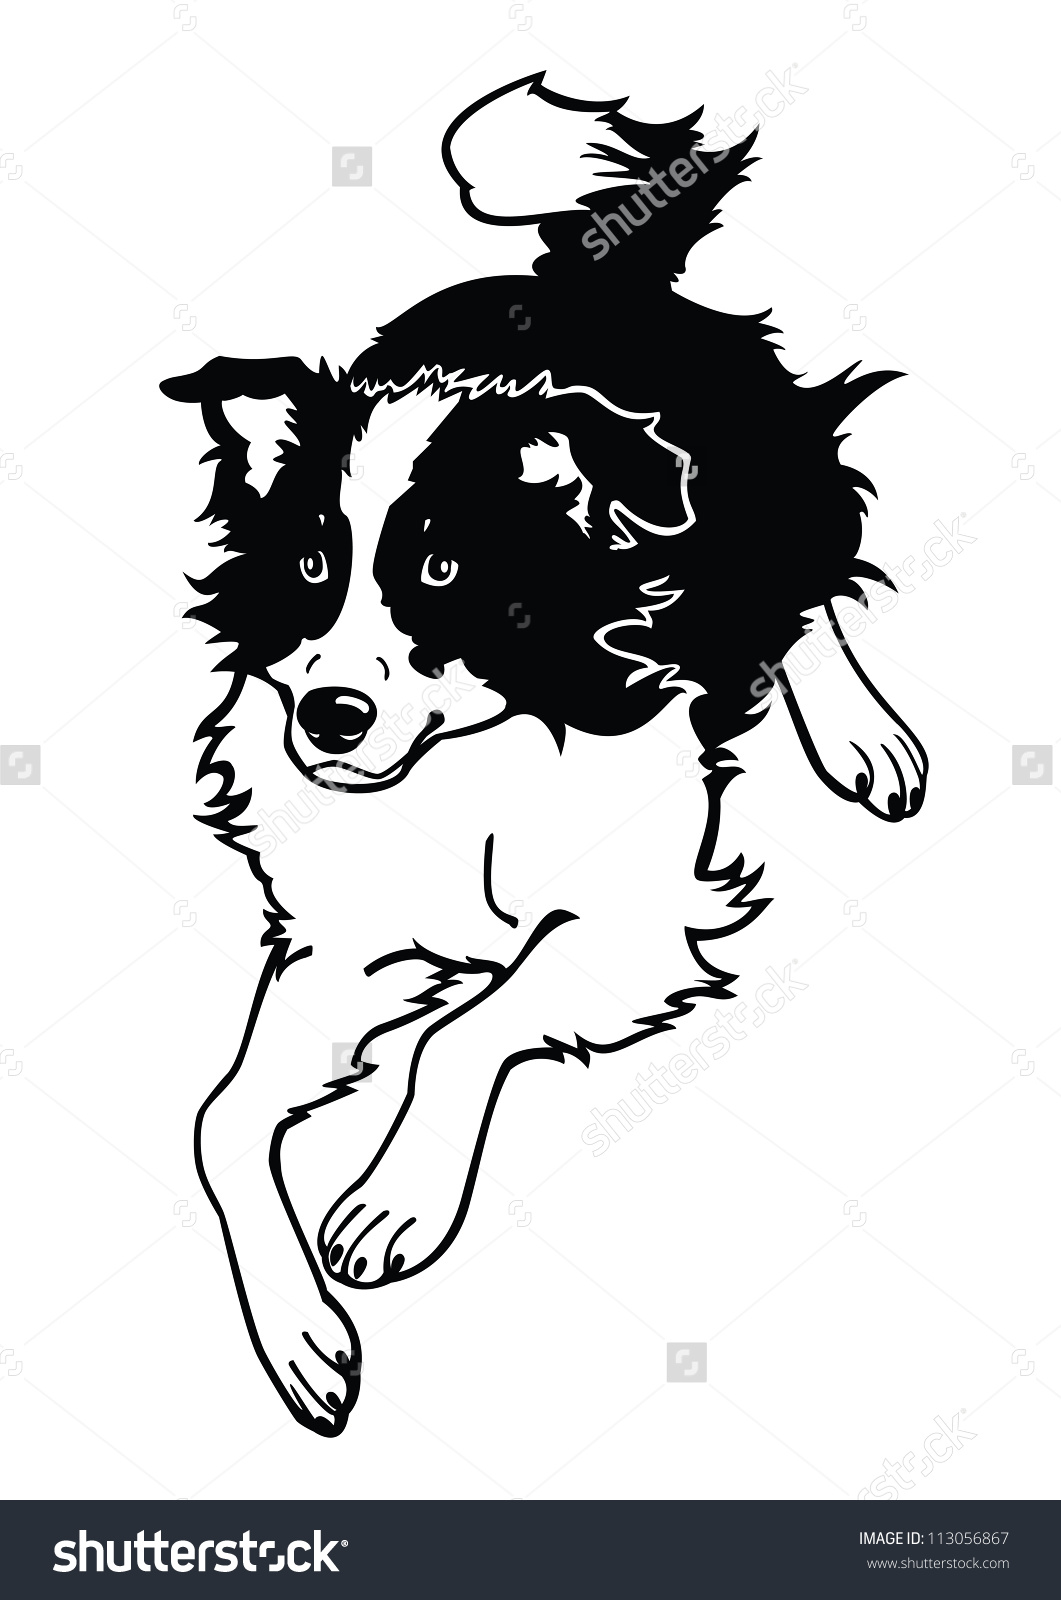 Border Collie svg #1, Download drawings